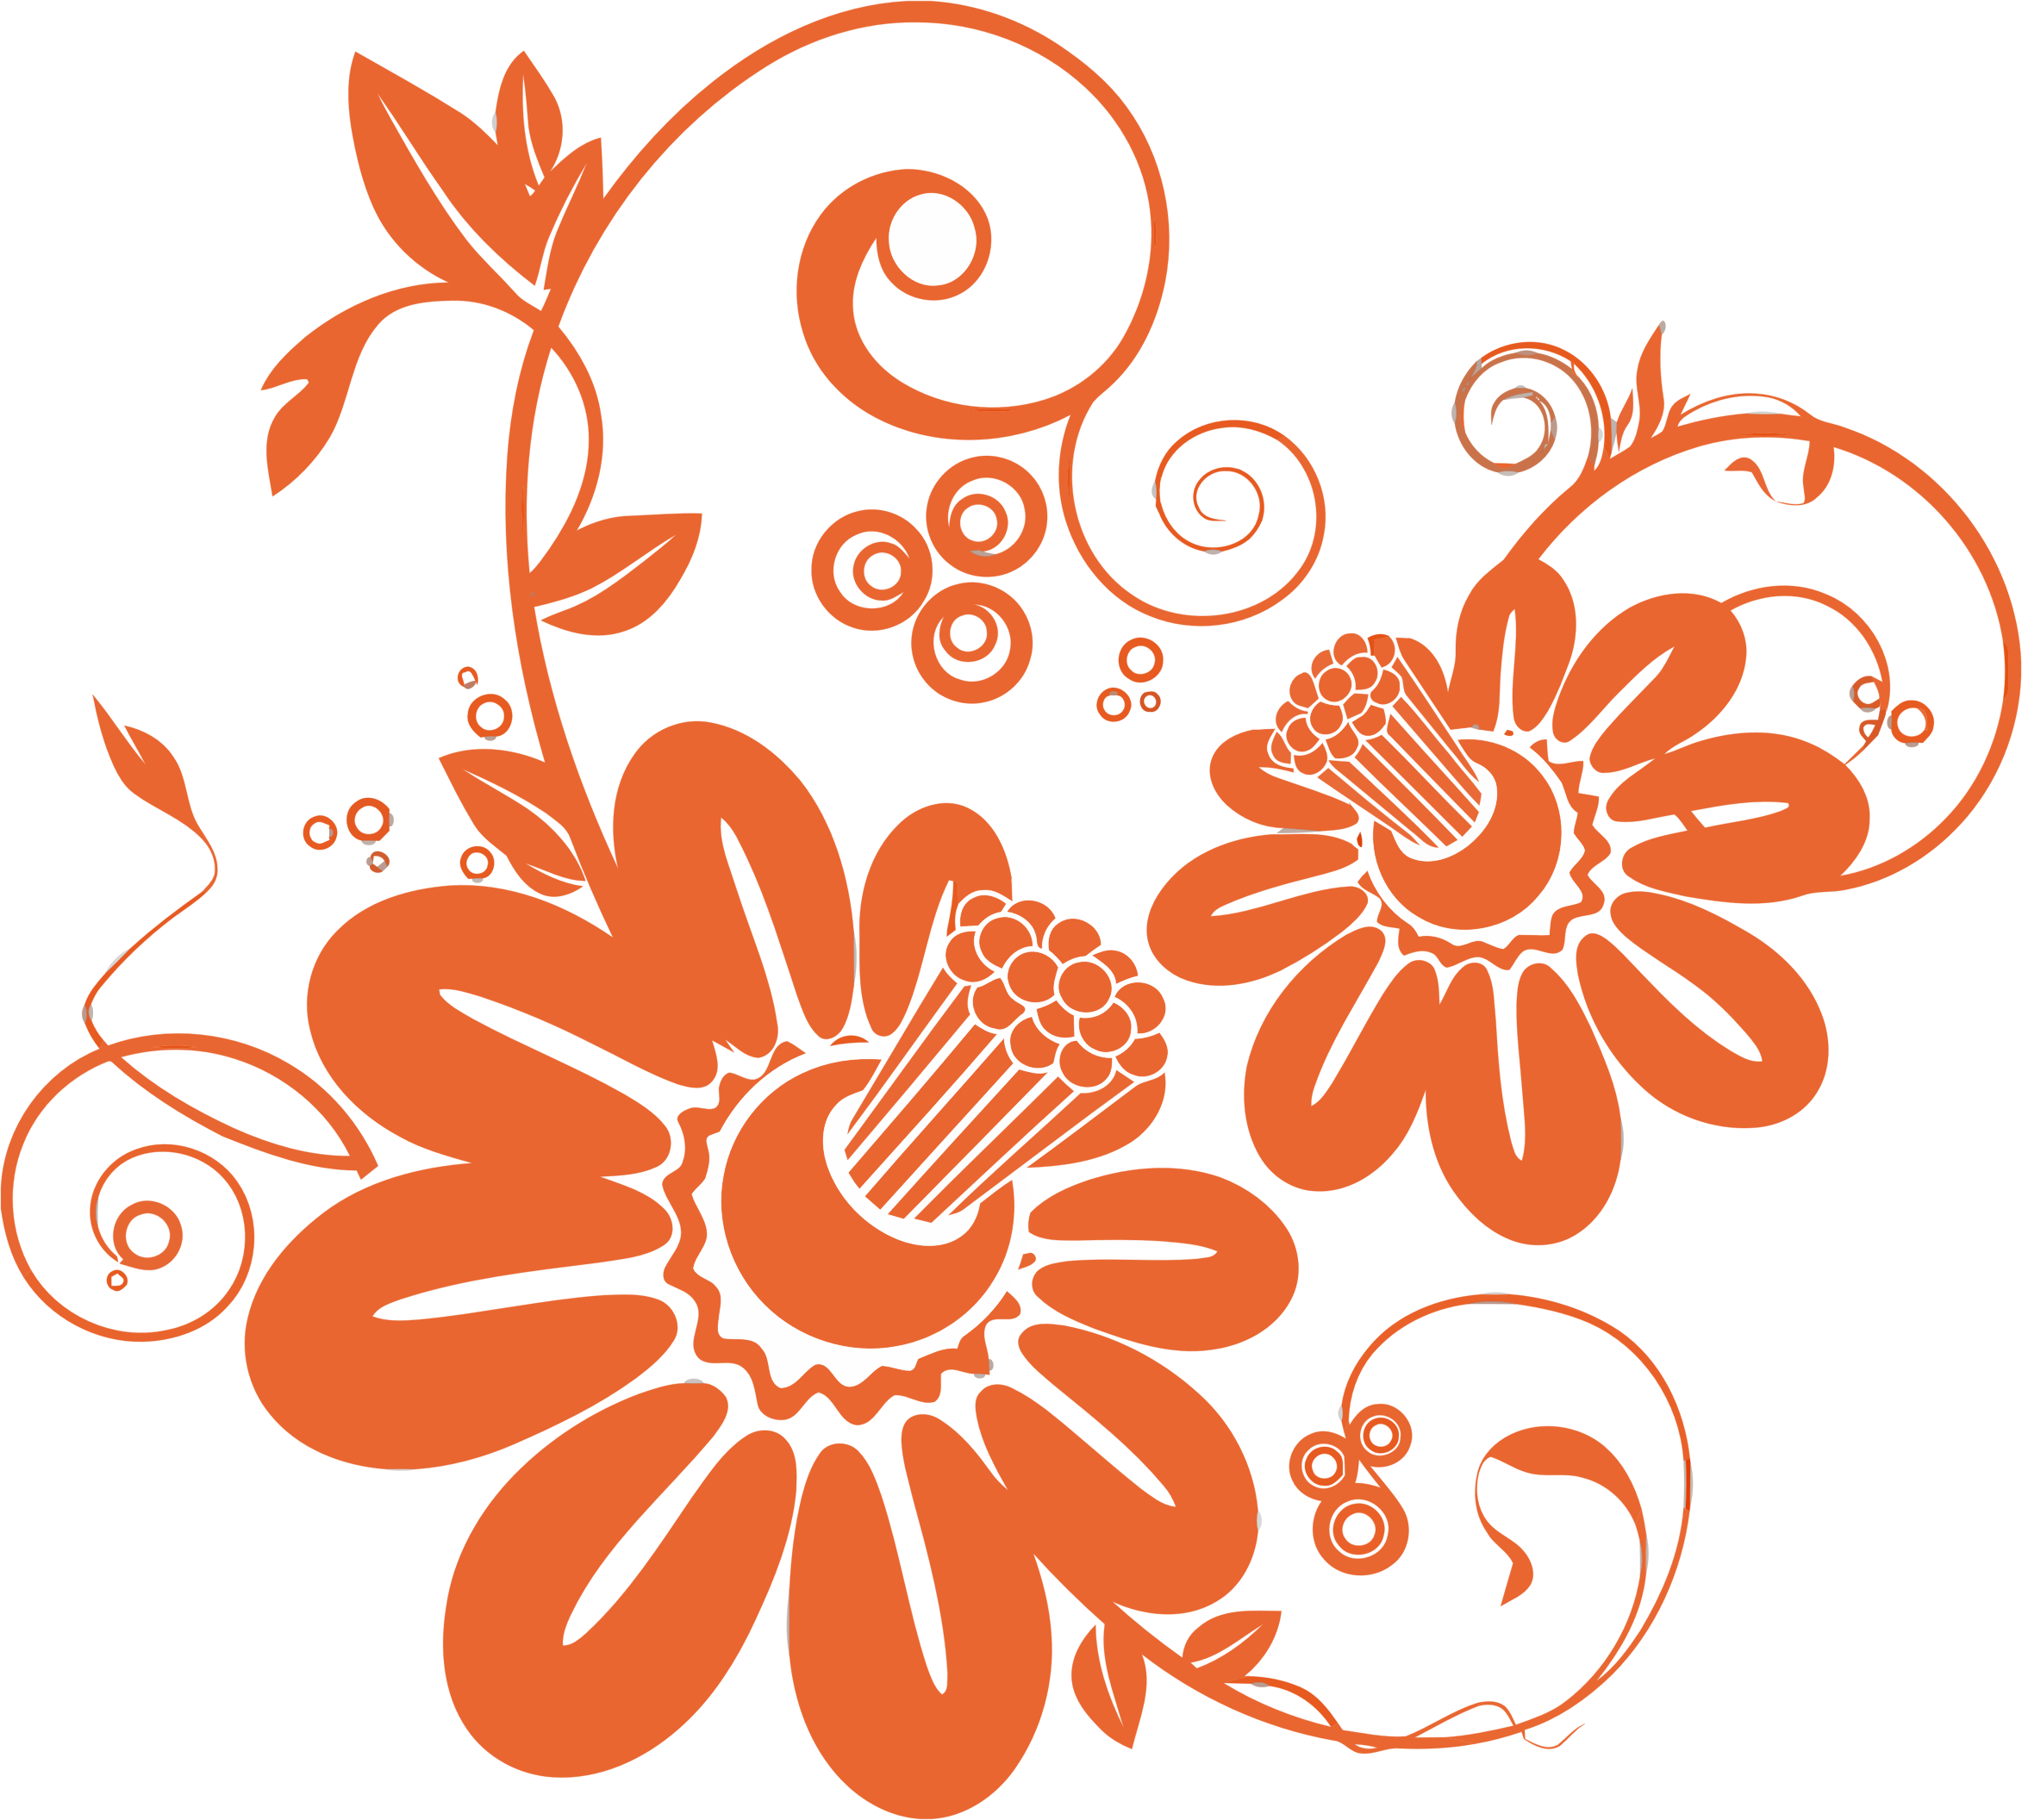 Floral pattern png transparent. Abstract icons free and